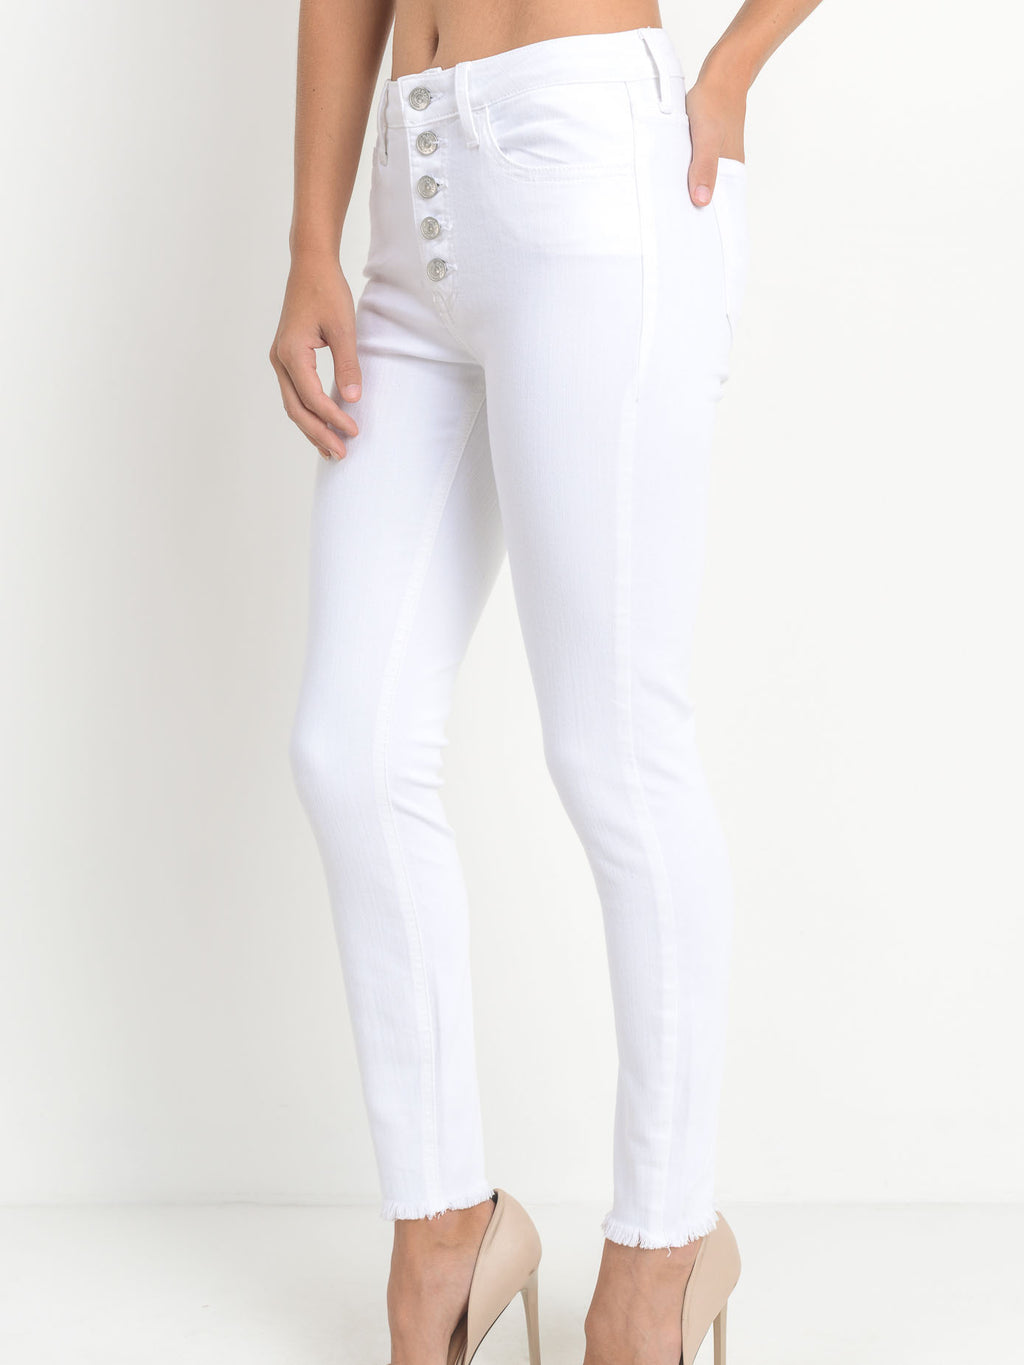 Button Down Skinny Jeans - Stitch And Feather